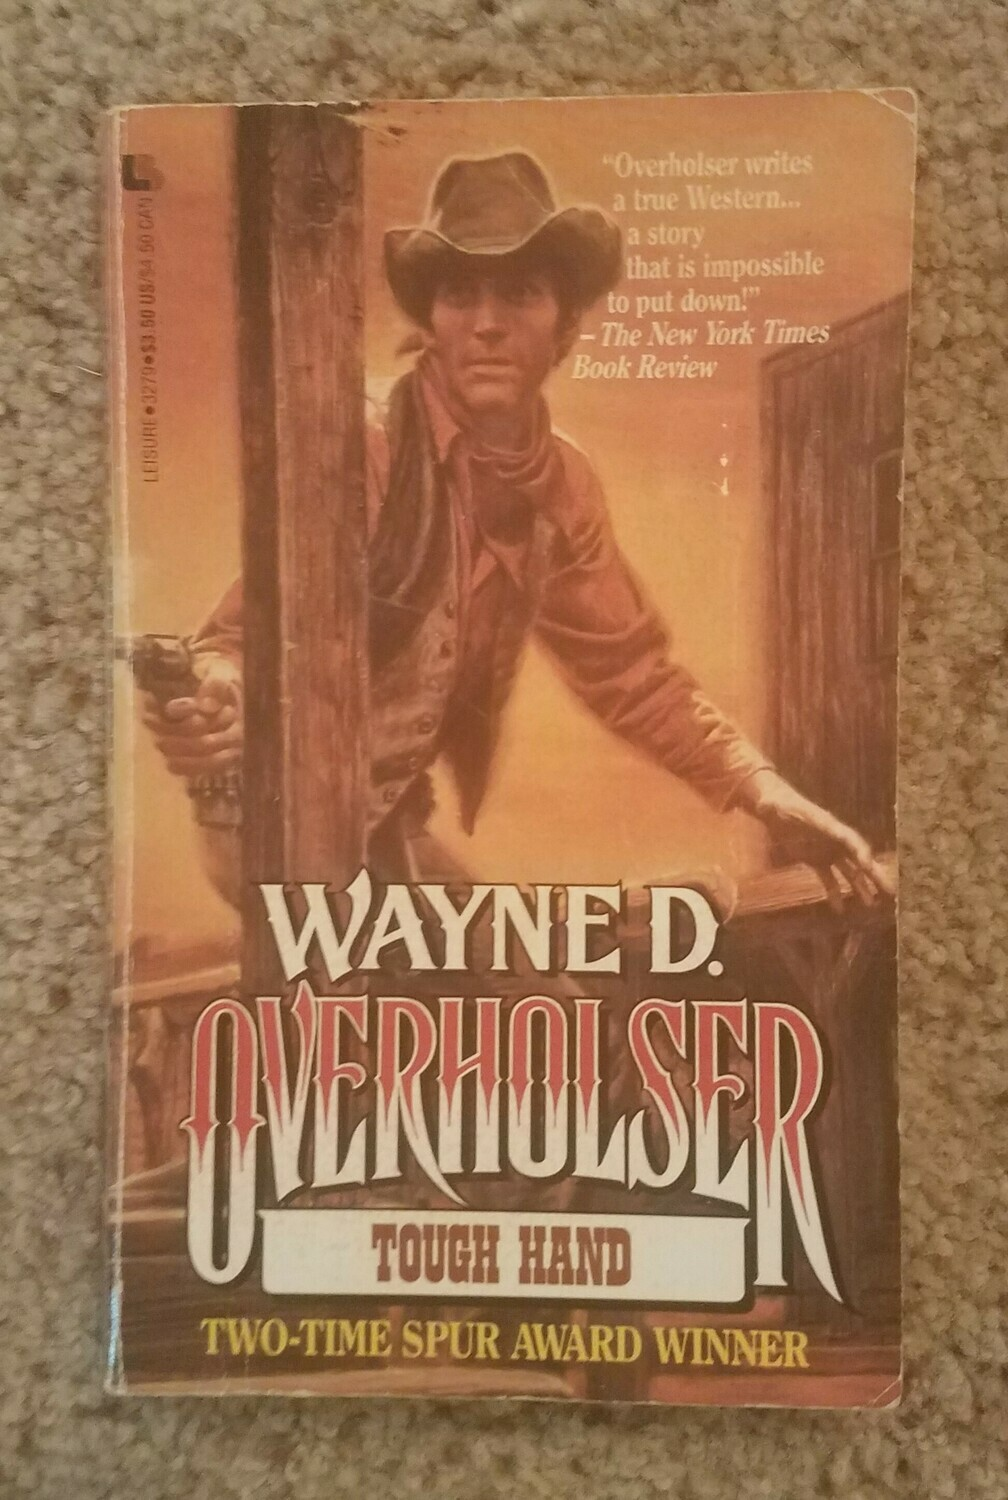 Tough Hand by Wayne D. Overholser